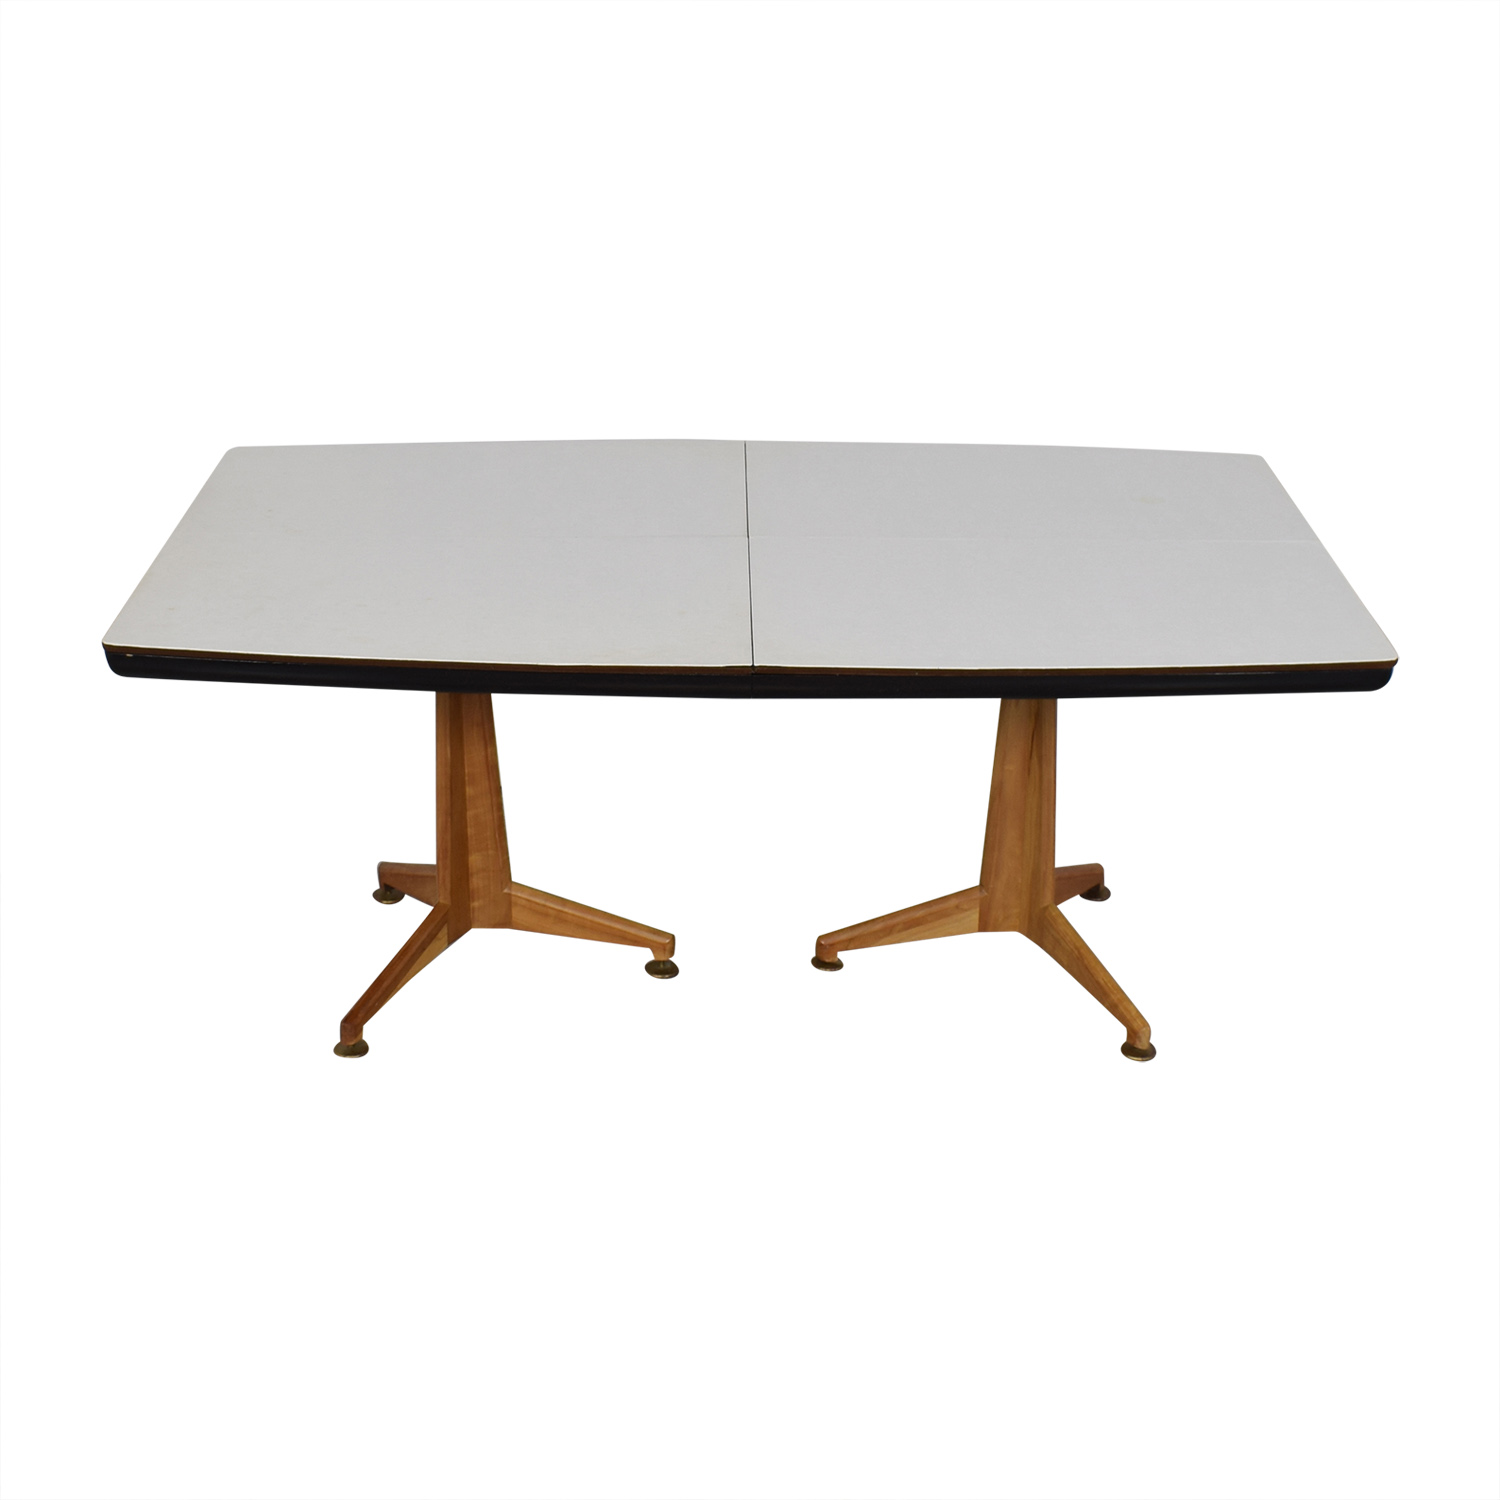 Johnson Furniture Johnson Furniture Mid Century Modern Extendable Dining Table nj